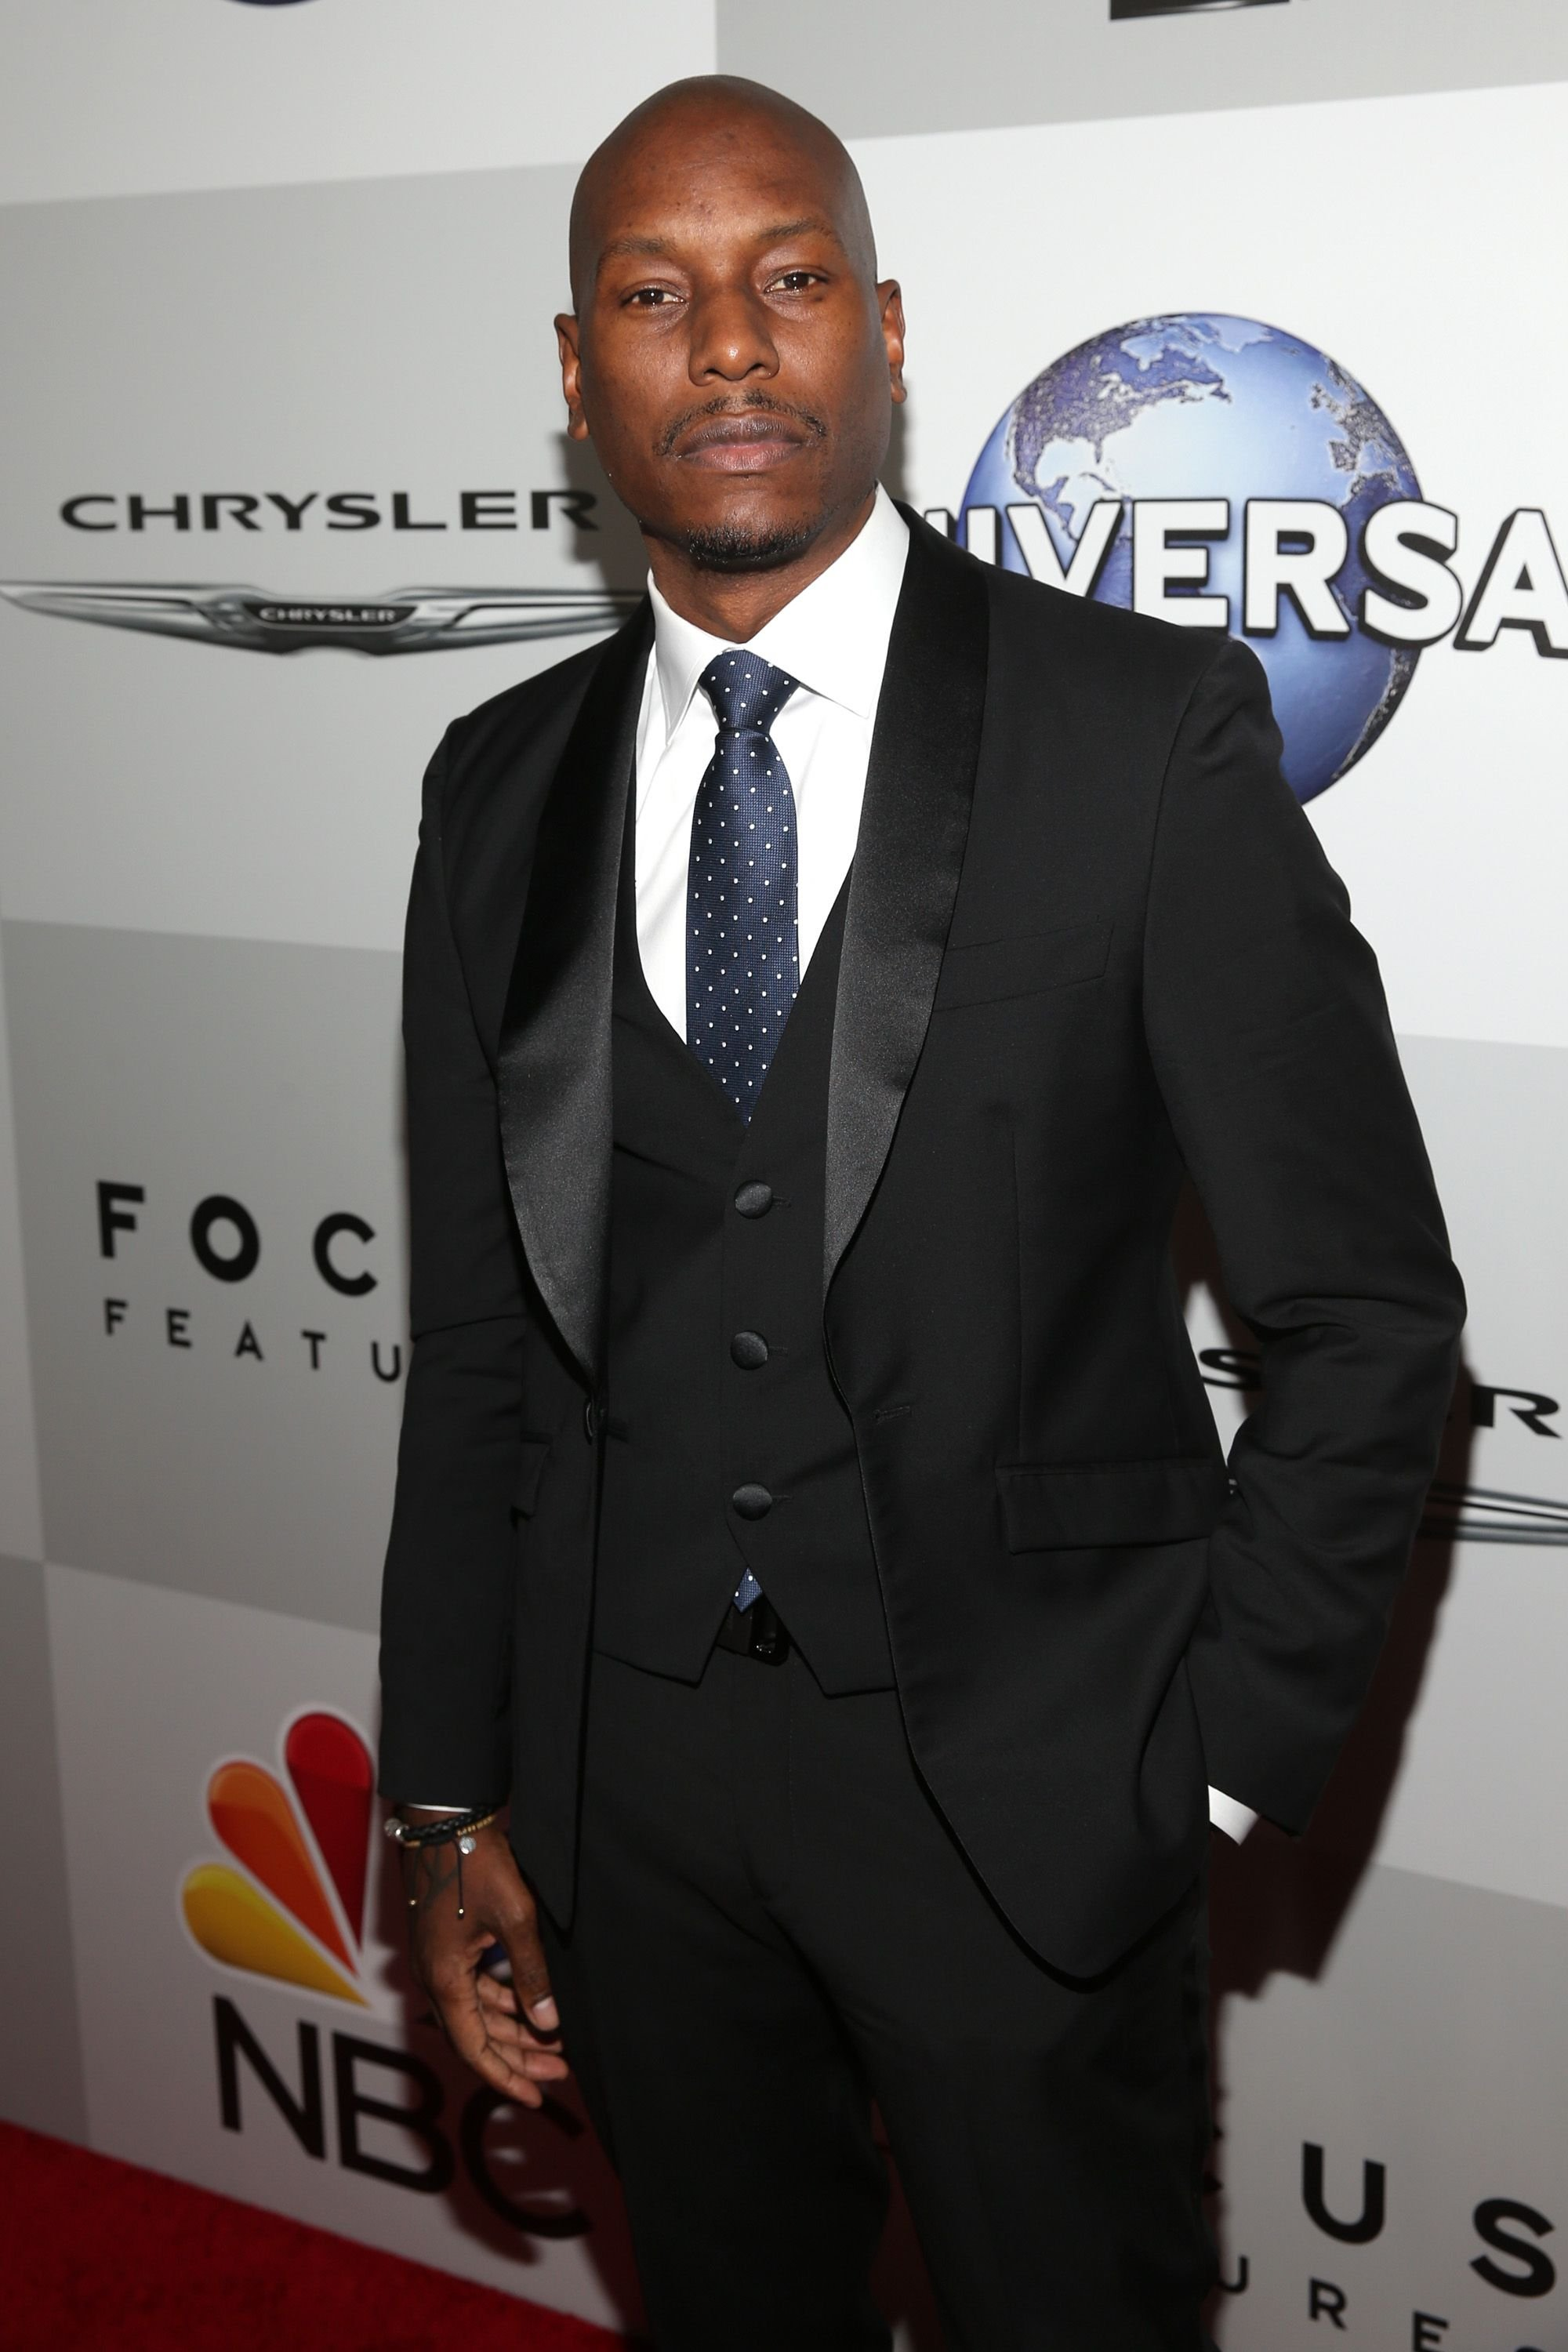 Tyrese Gibson at Universal, NBC, Focus Features, and E! Entertainment Golden Globe Awards After Party on January 10, 2016, in Beverly Hills, California | Photo: Jesse Grant/Getty Images